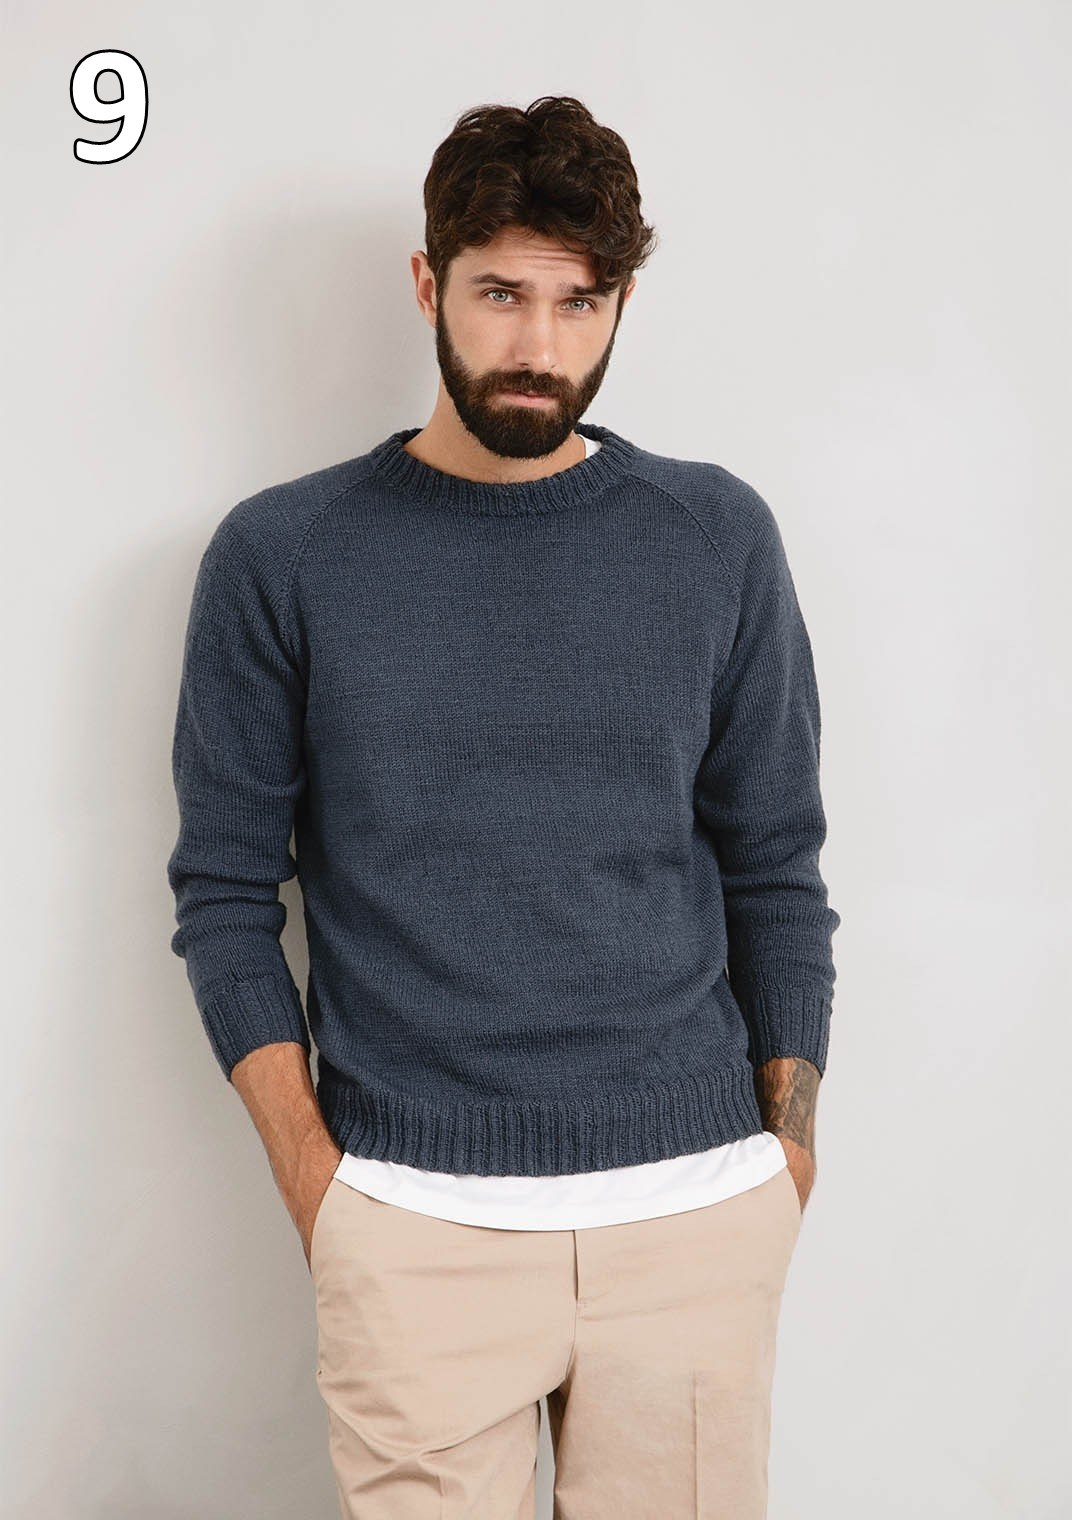 Sandnes 2008 - Sunday model 9 Mr Casual Sweater (Genser)